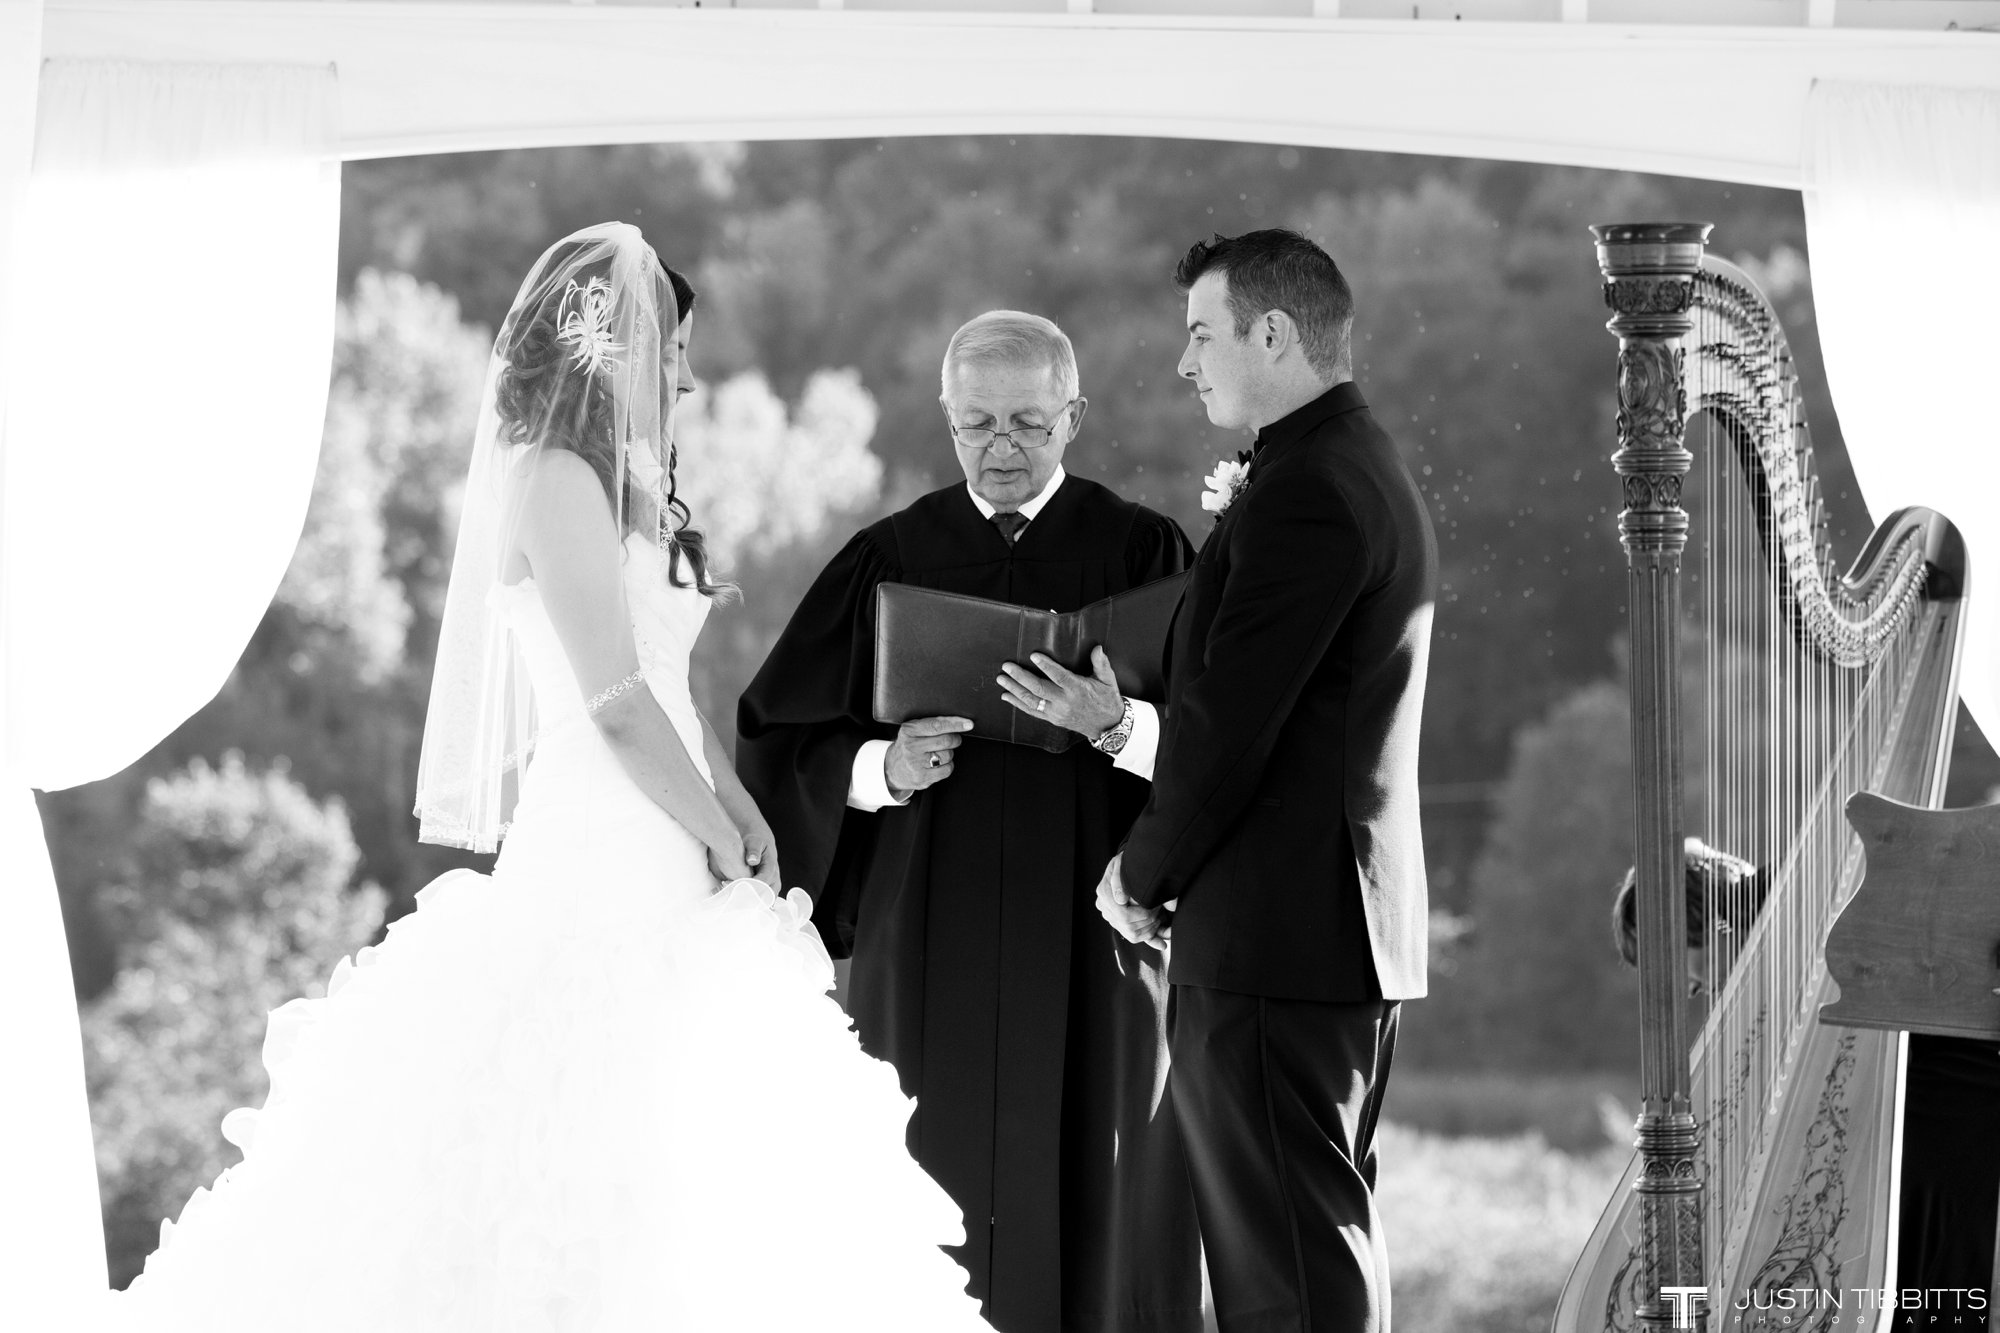 Justin Tibbitts Photography Mr and Mrs Zaffino Deannas Bridal Wedding-216